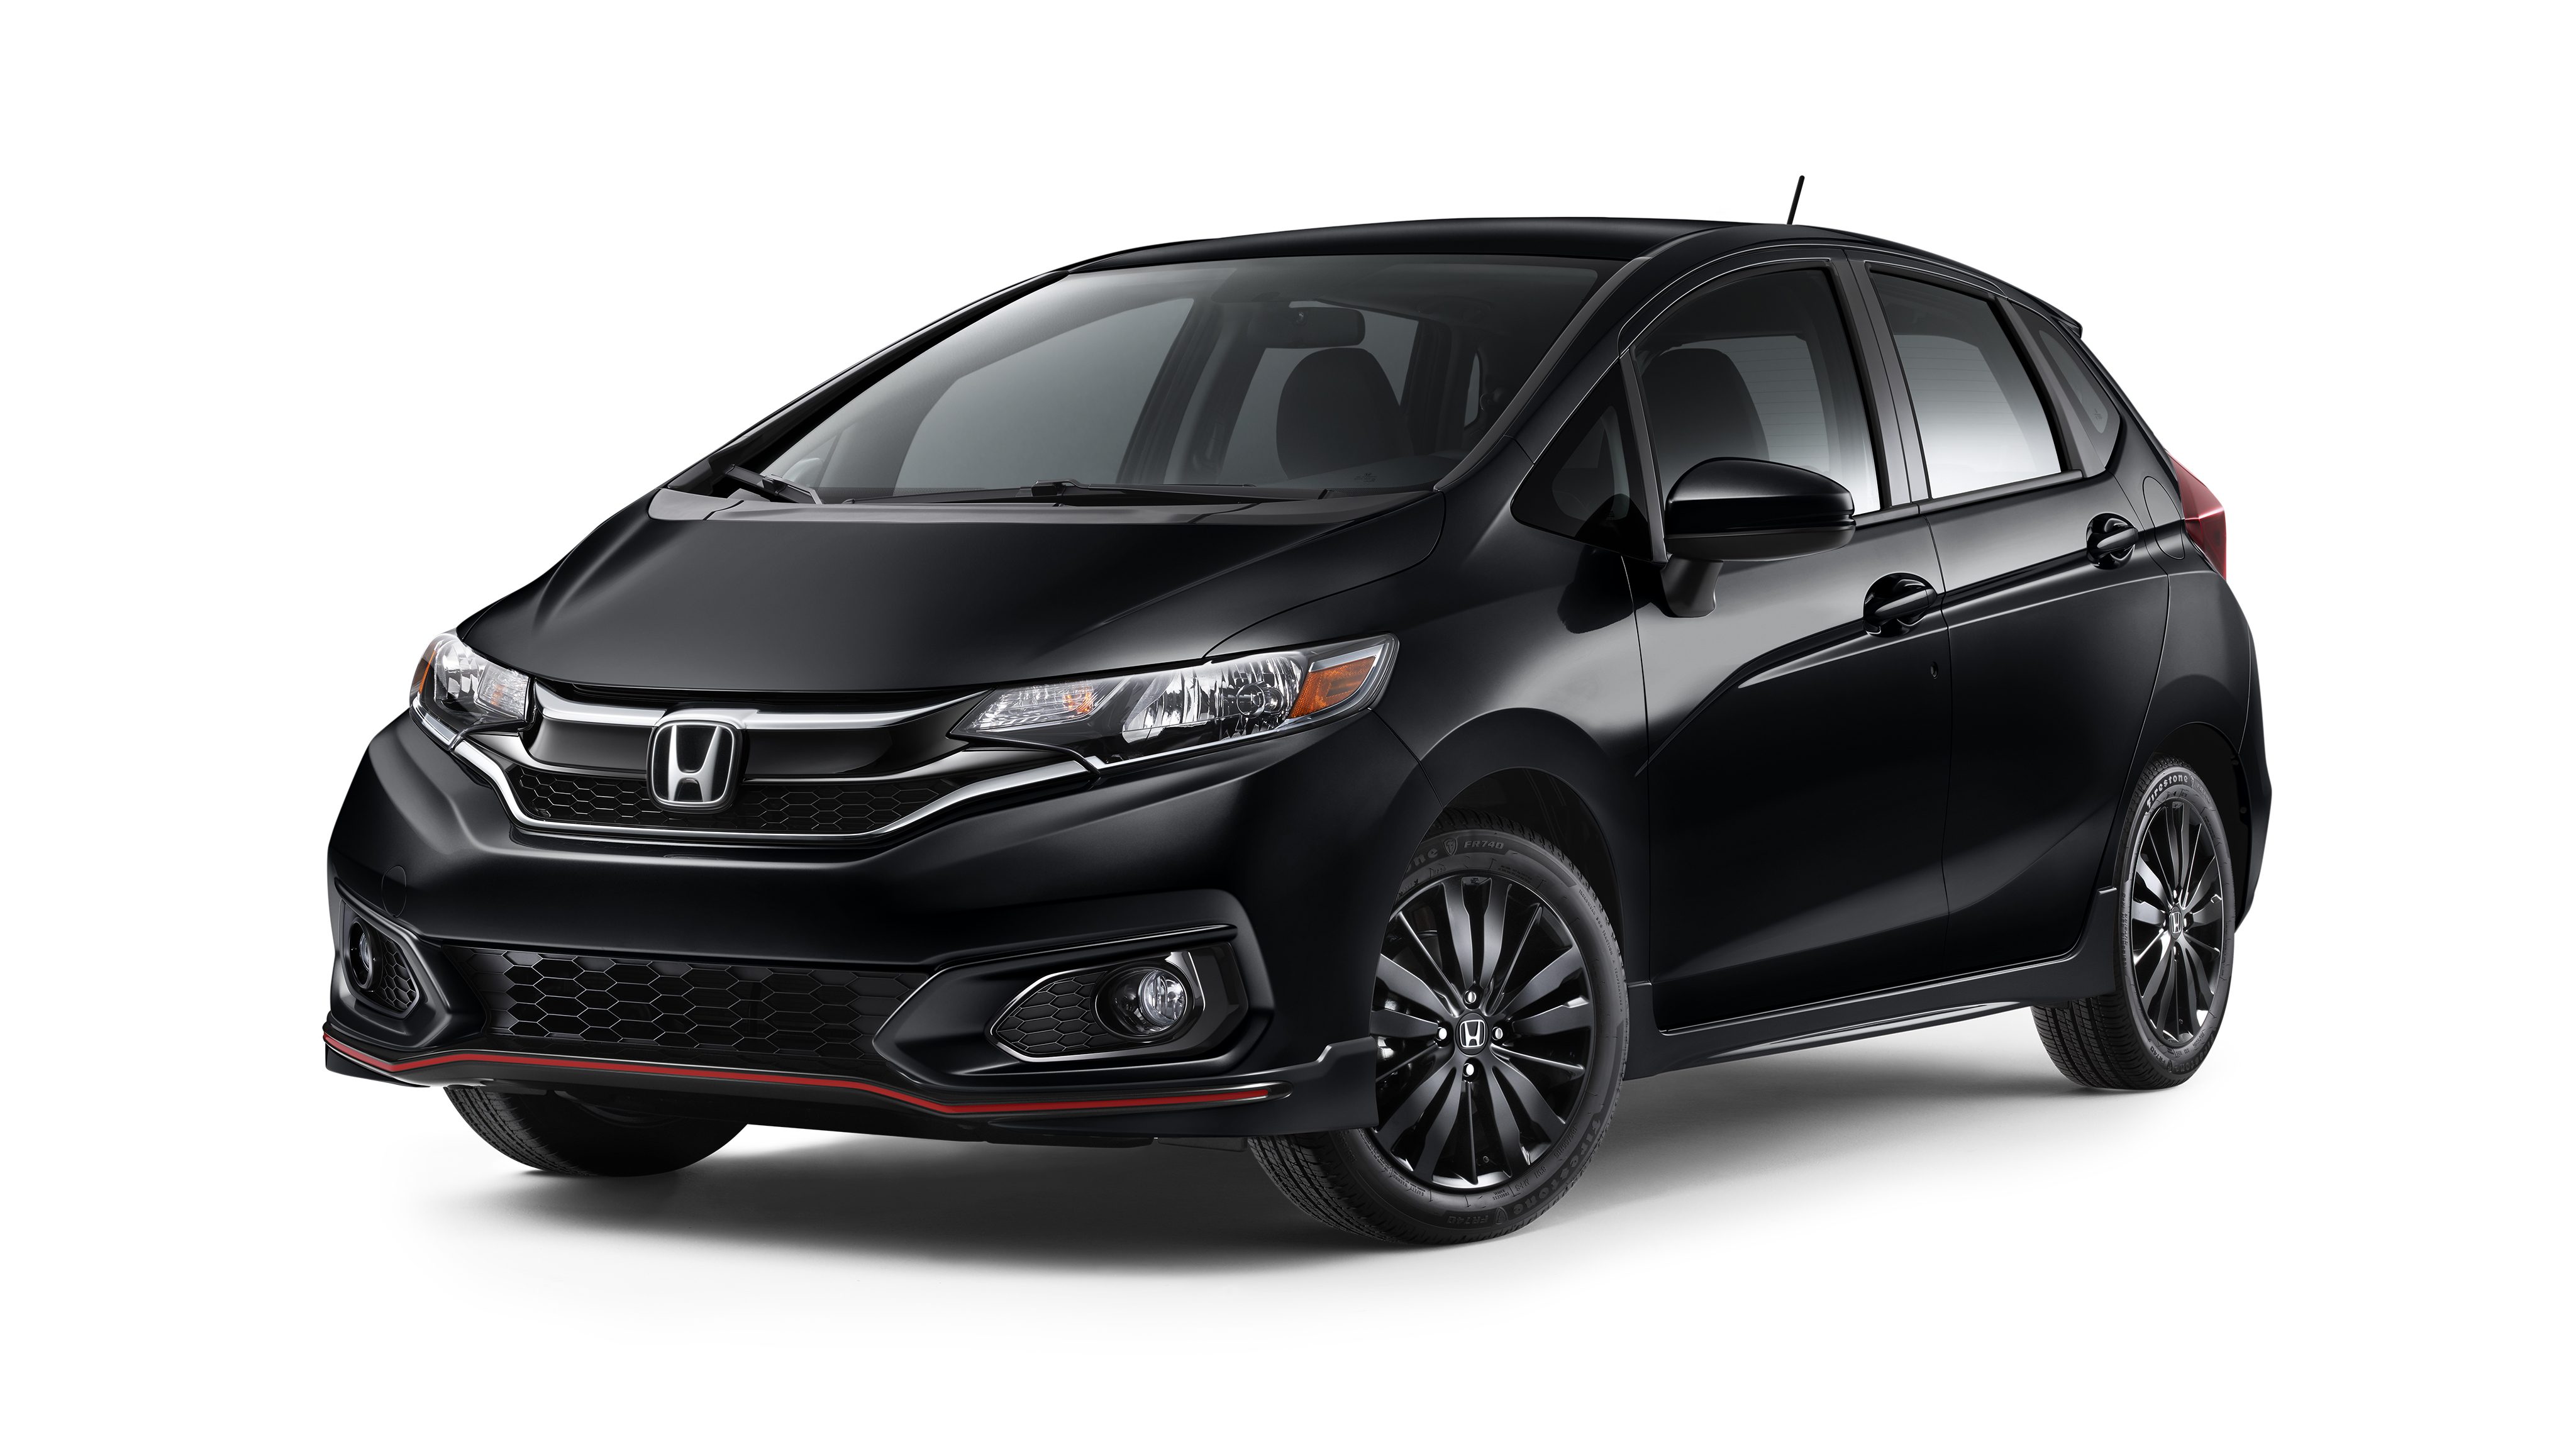 jazz deals lease it an up amazing cutout deal honda compass hire hatchback with contract